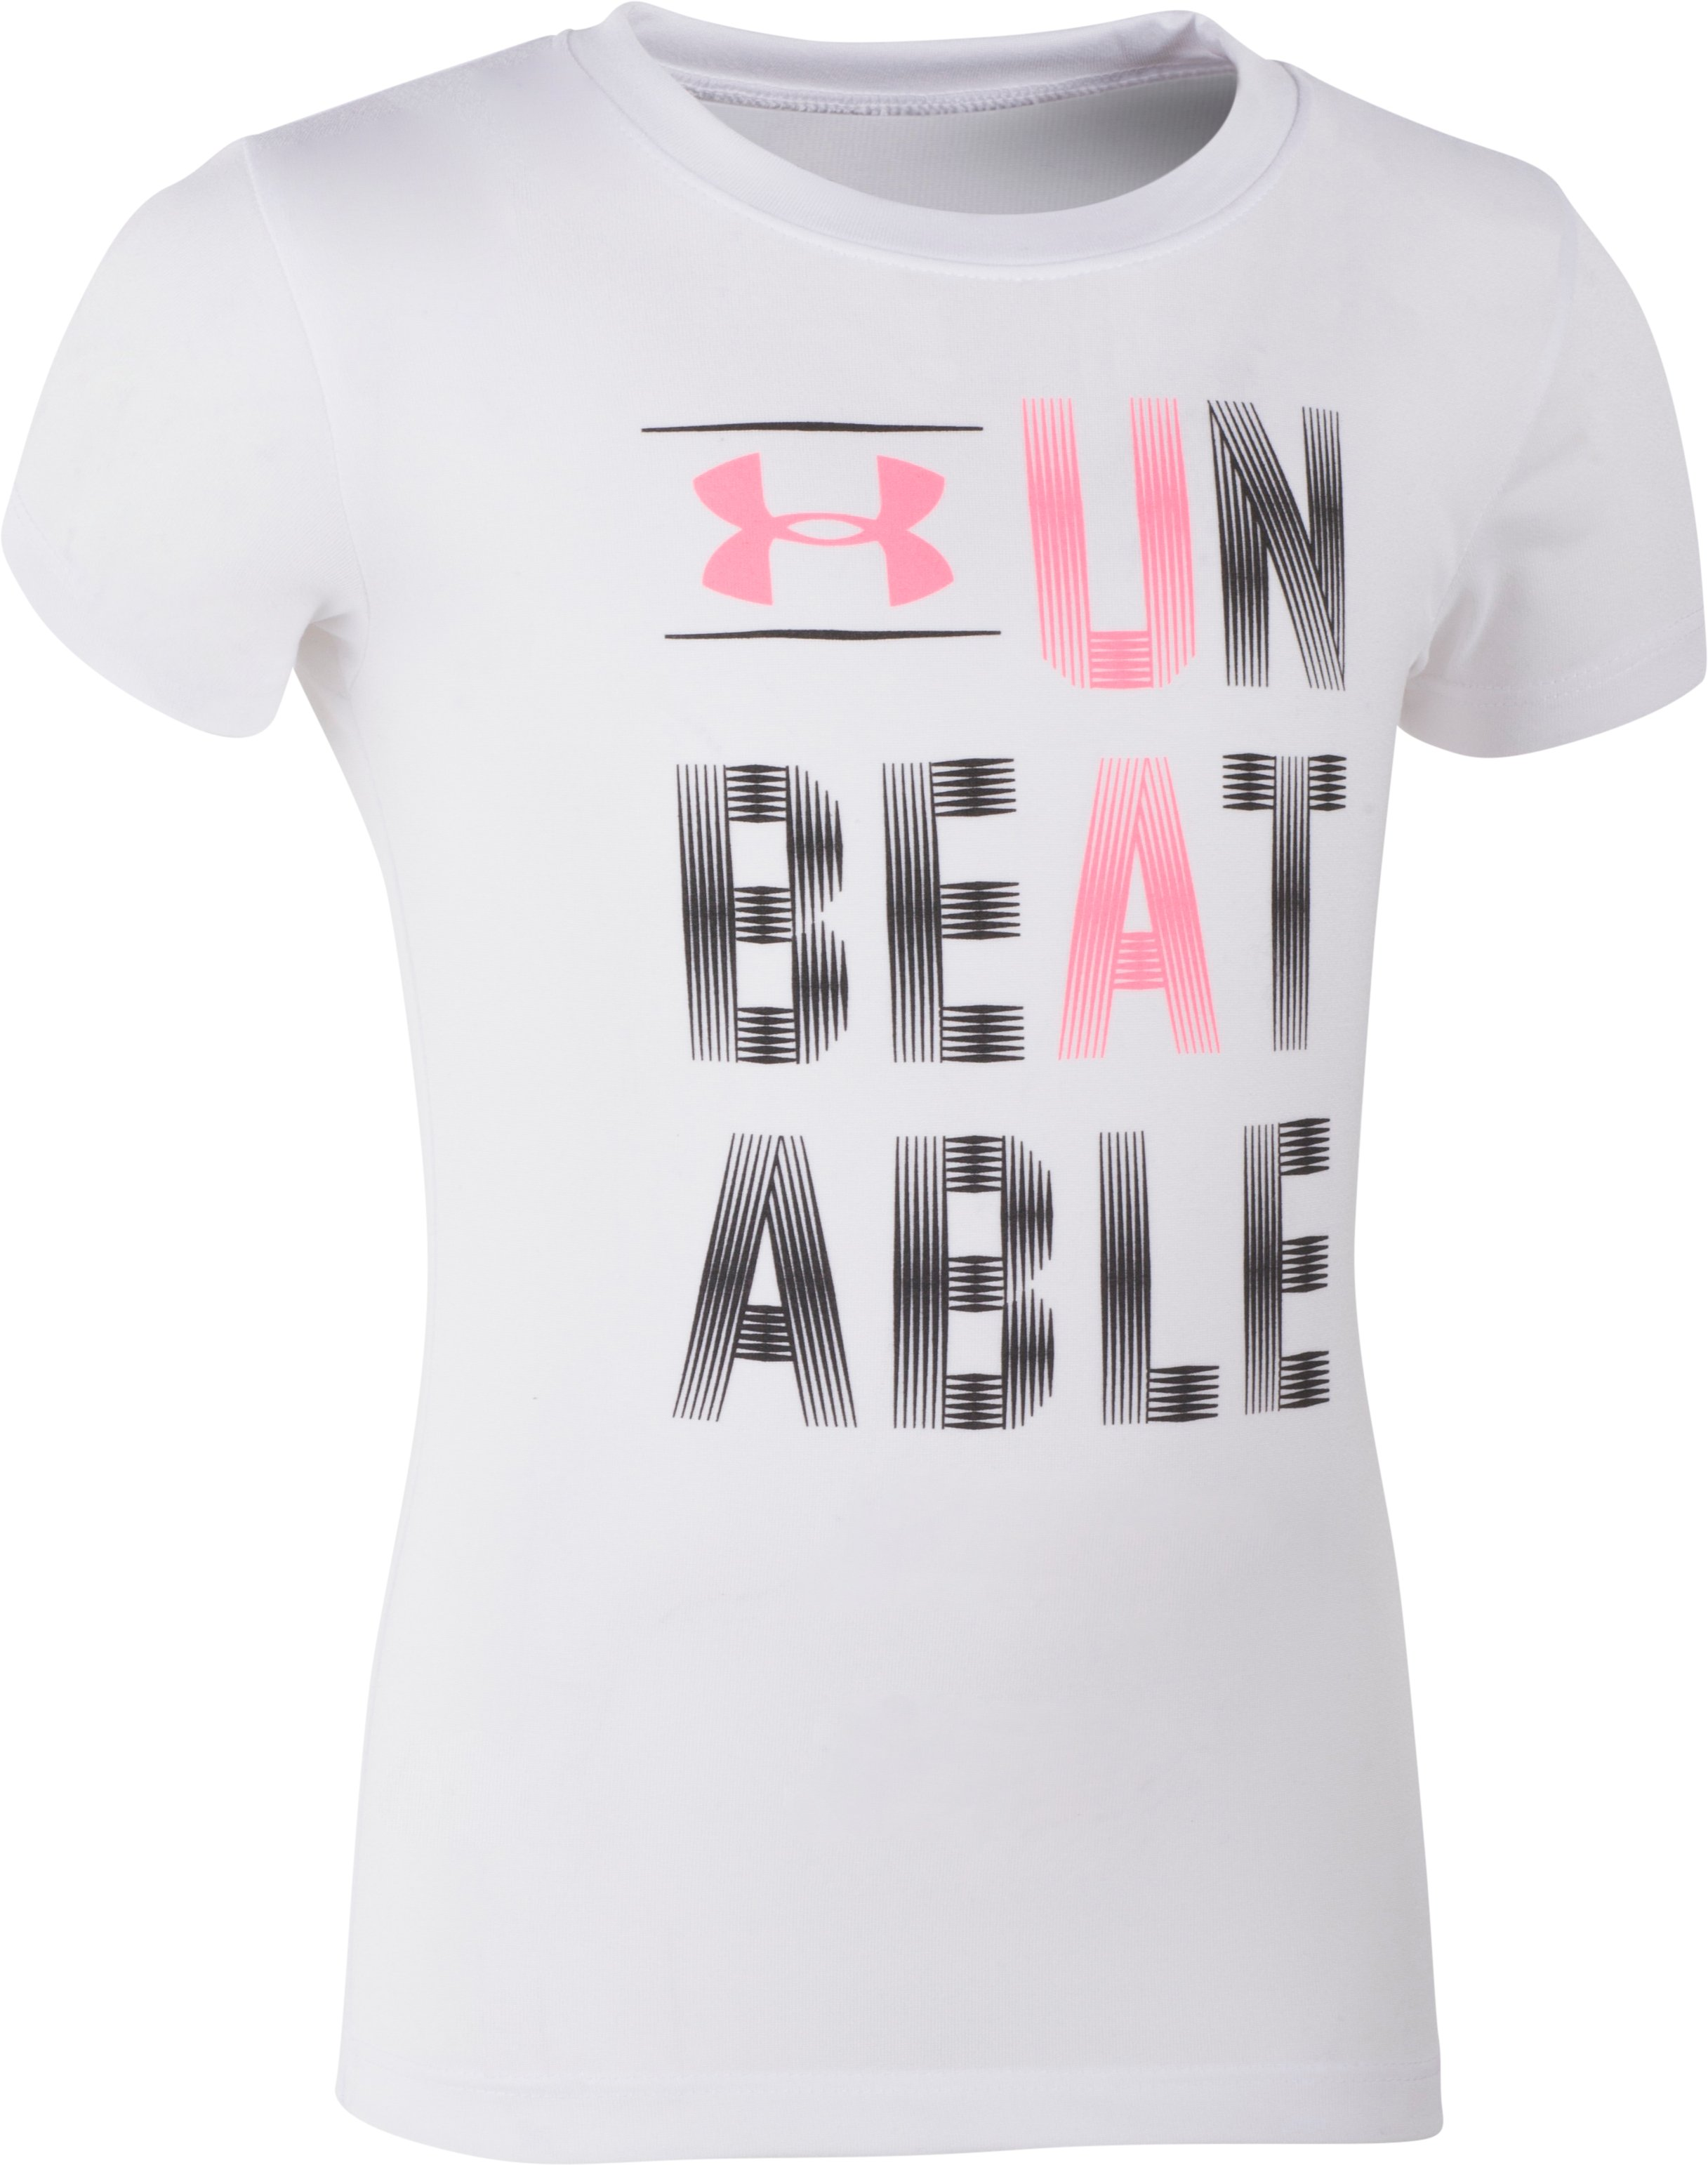 Girls' Pre-School UA Unbeatable T-Shirt, White